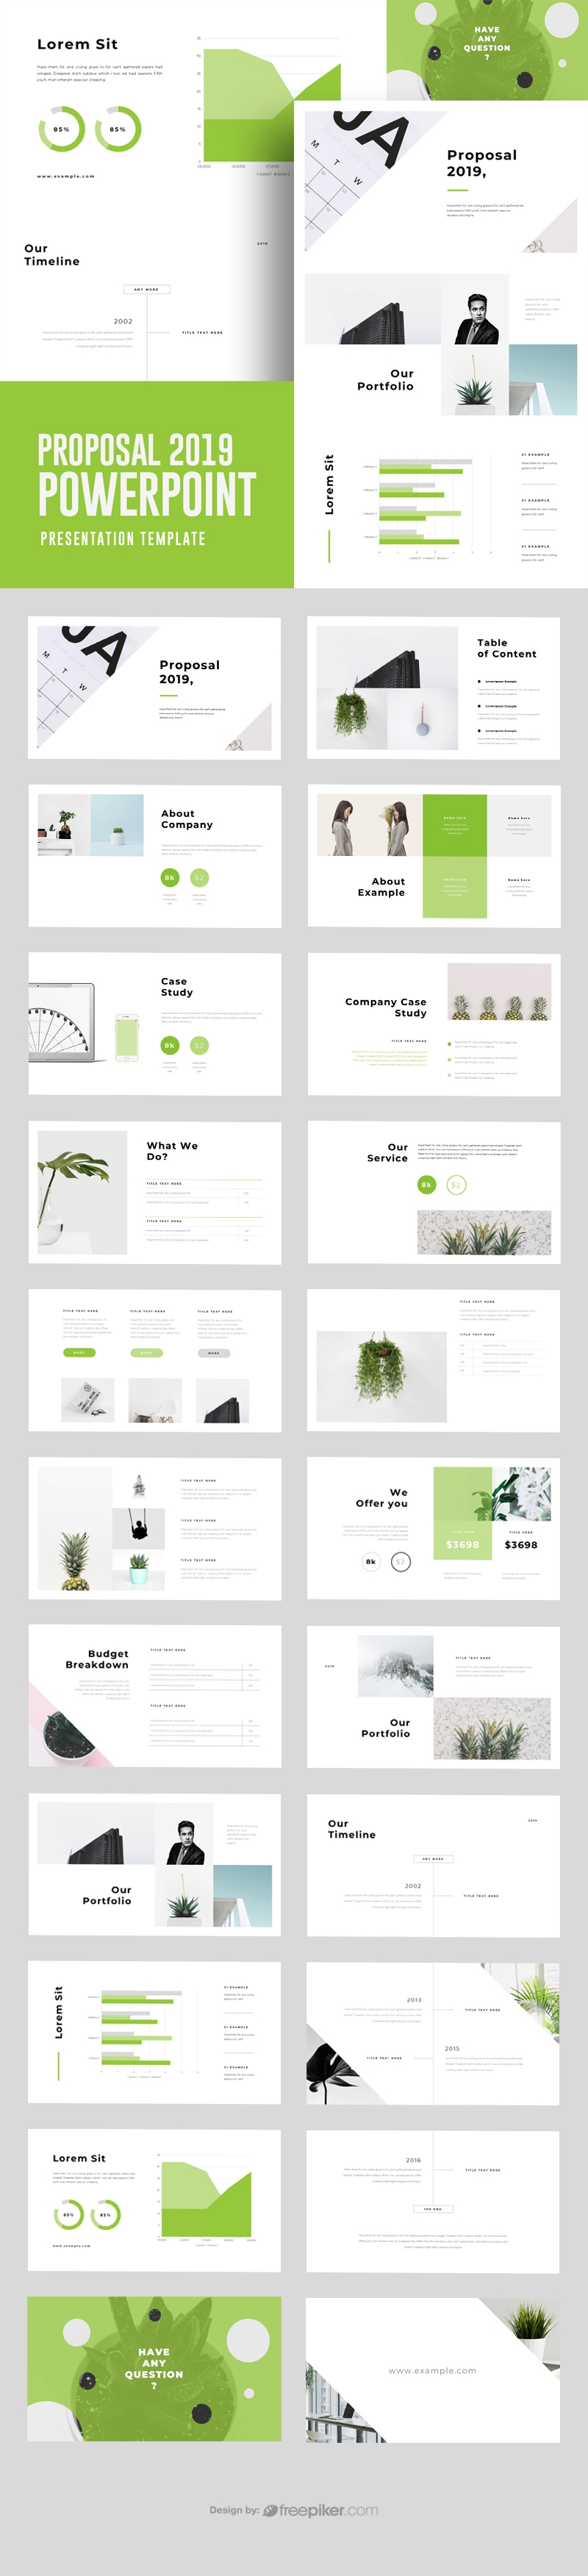 Business Proposal 2019 Powerpoint Template